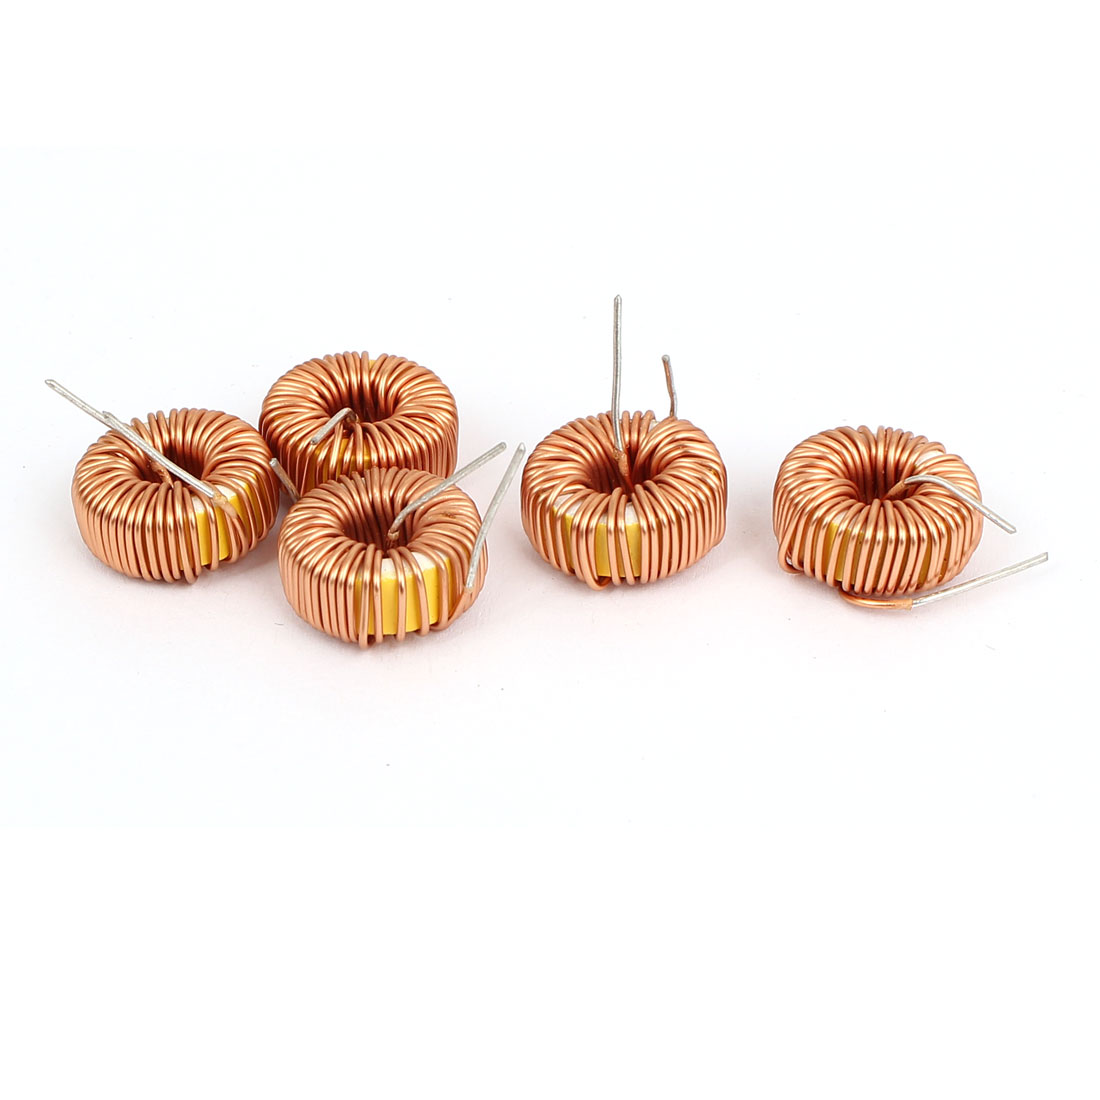 100 UH 15mm x 6mm Rated Current 3A Ring Winding Inductors 5 Pcs